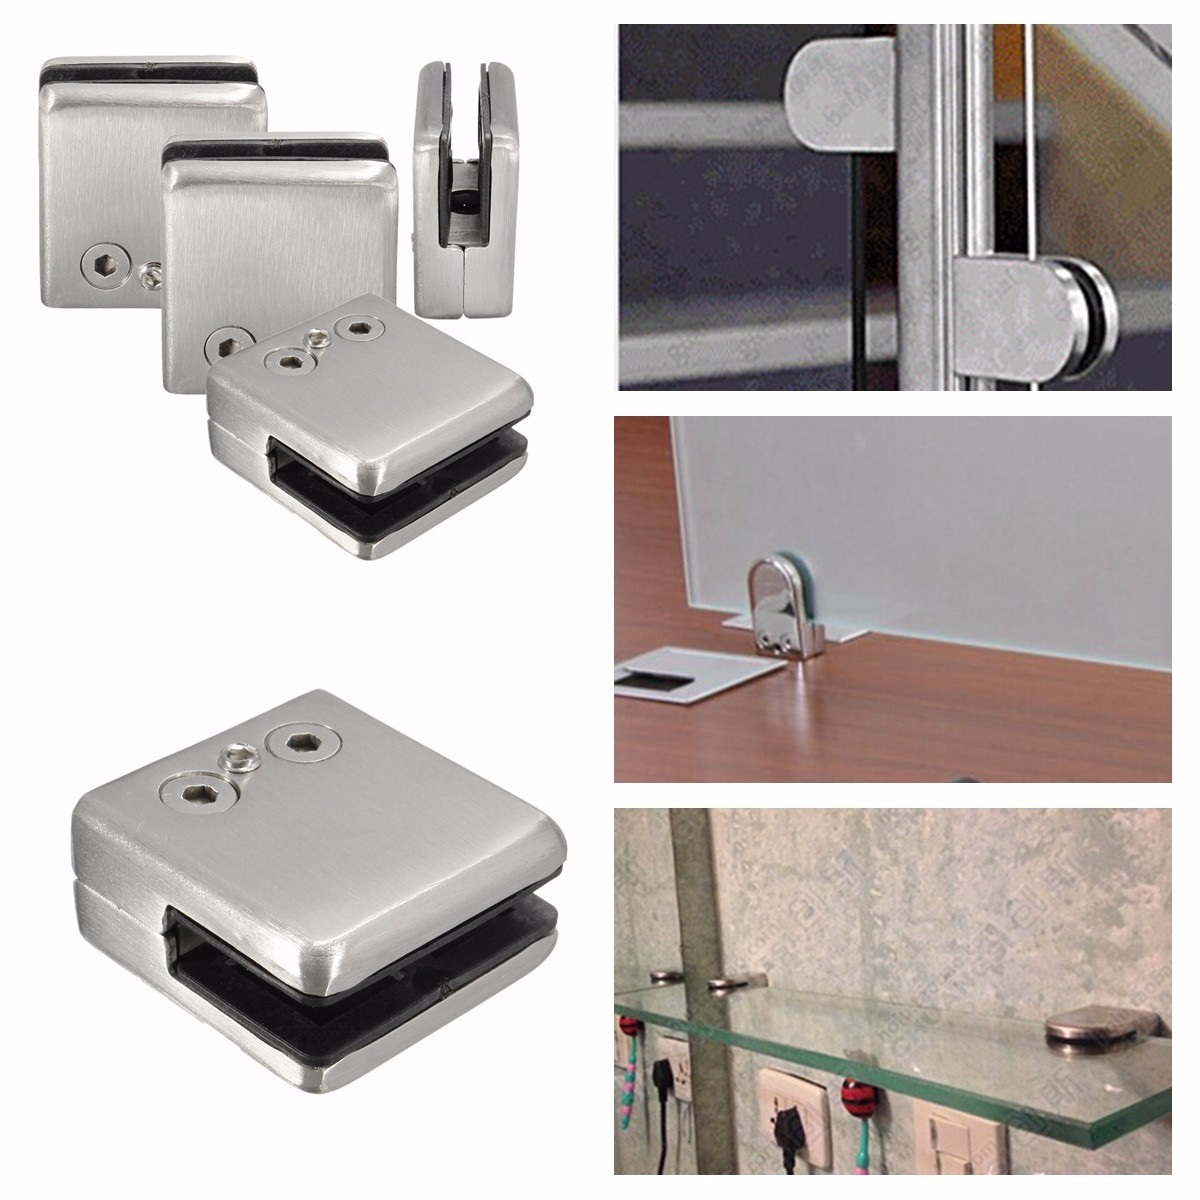 4Pcs Stainless Steel Square Glass Clamp Holder Glass Shelf Bracket Support Clip for Window Balustrad